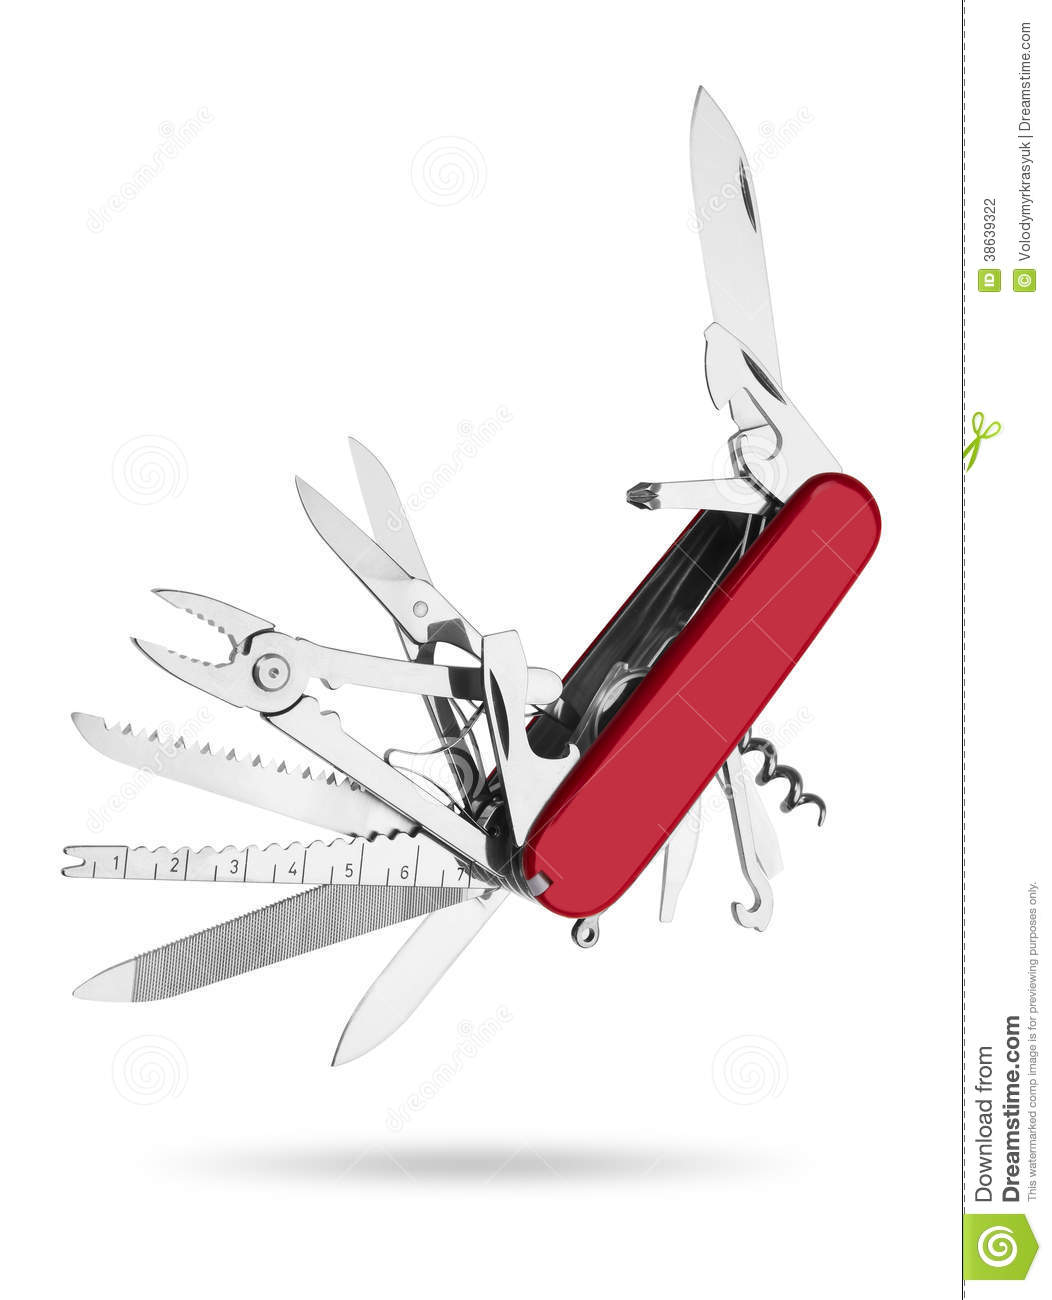 Multi Tool Stock Photography Cartoondealer Com 27820826